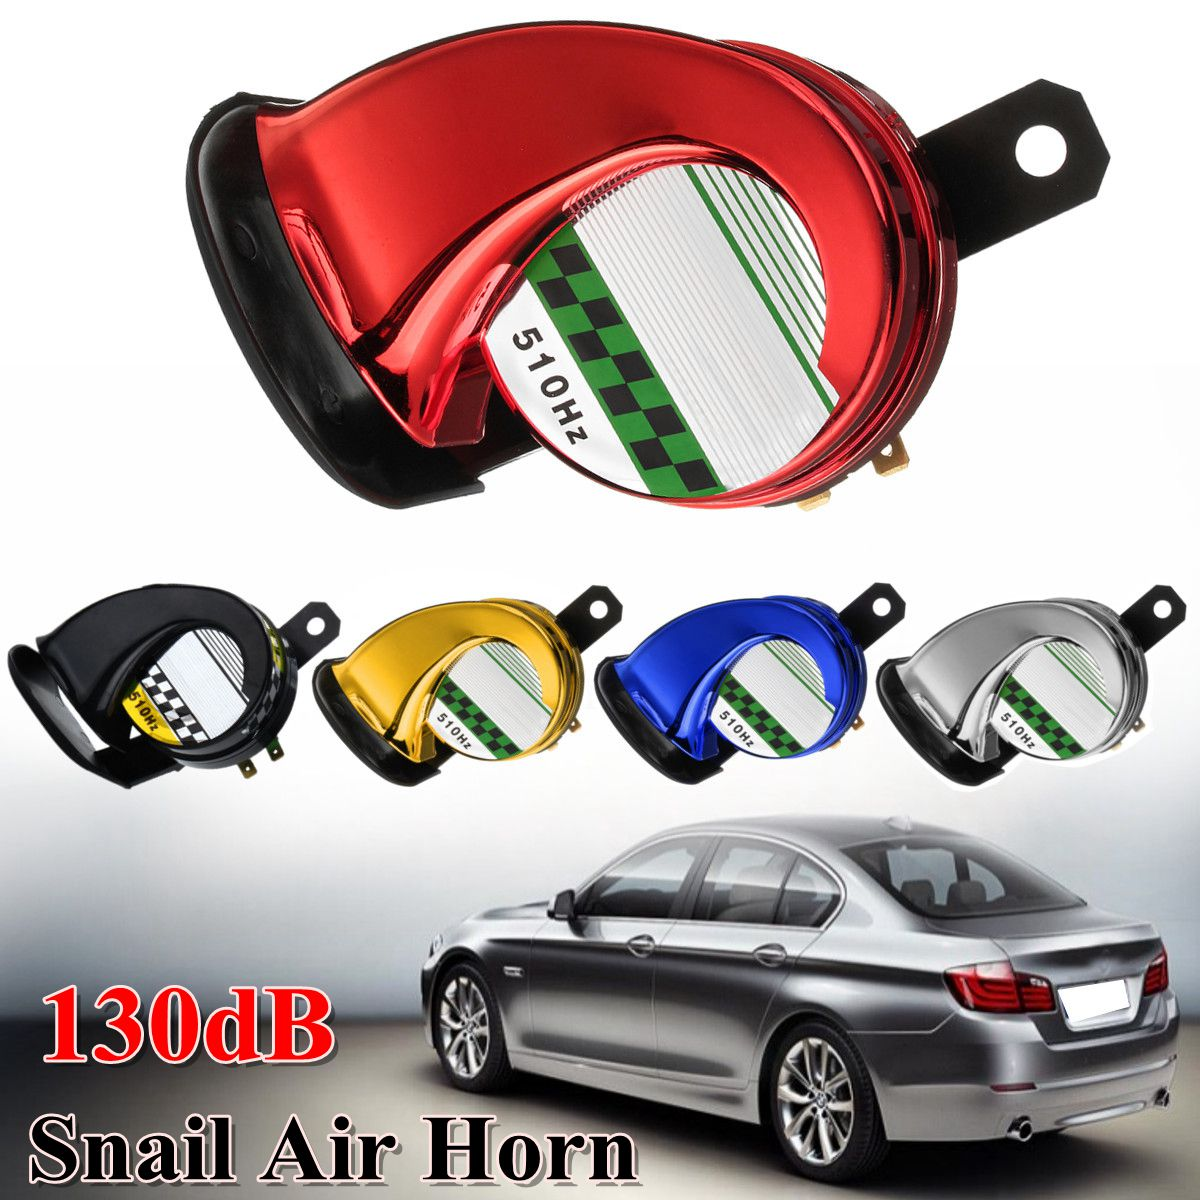 Universal 12V DC 130db Snail Air Motorcycle Horn Siren Loud for Car Truck Motorbike Waterproof-in Multi-tone & Claxon Horns from Automobiles & Motorcycles